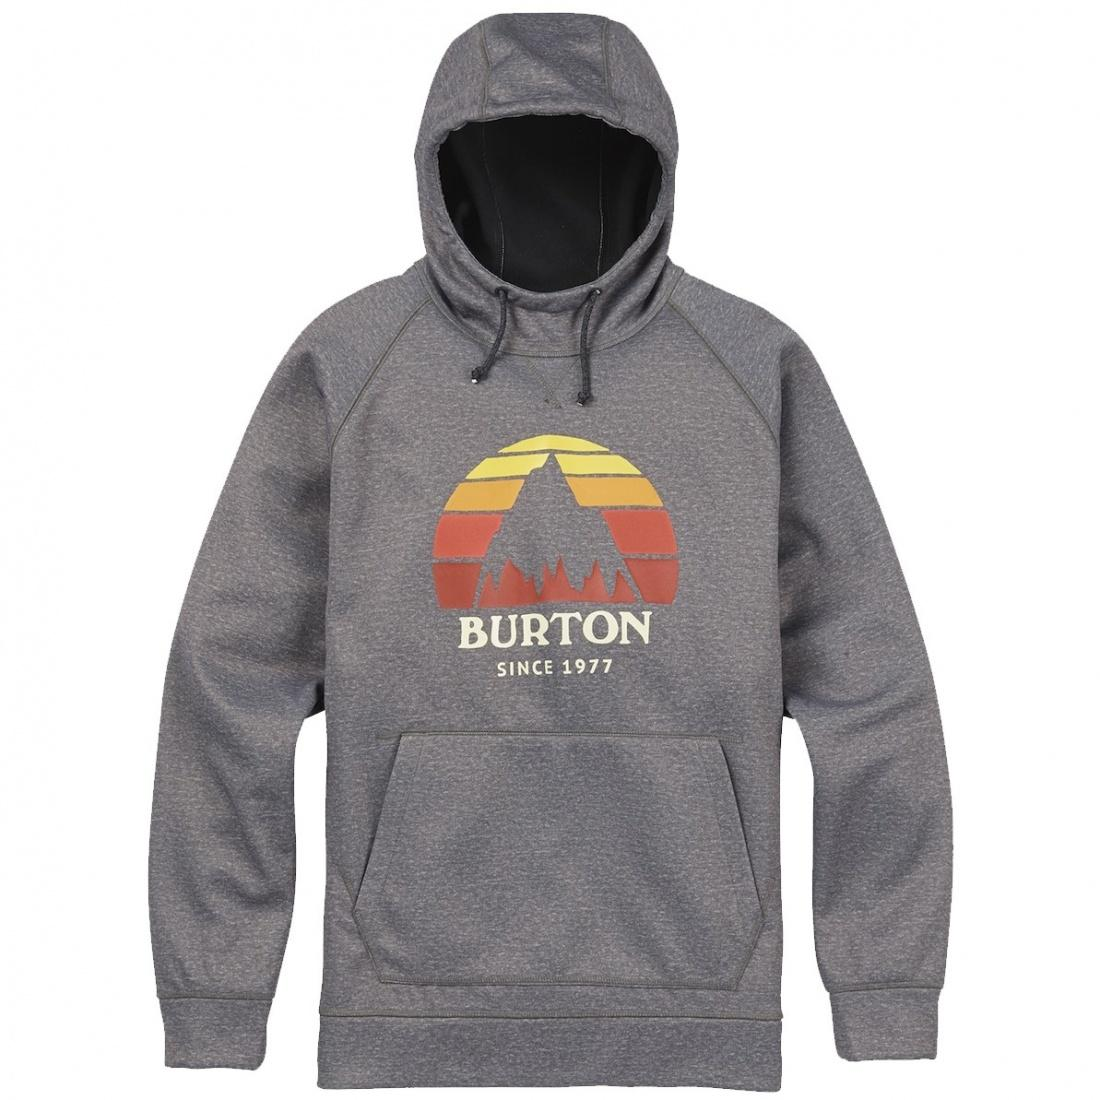 Burton ТОЛСТОВКА Burton BOYS CROWN BND PO MONUMENT HEATHER XS burton футболка burton lgo horizntl heather grey